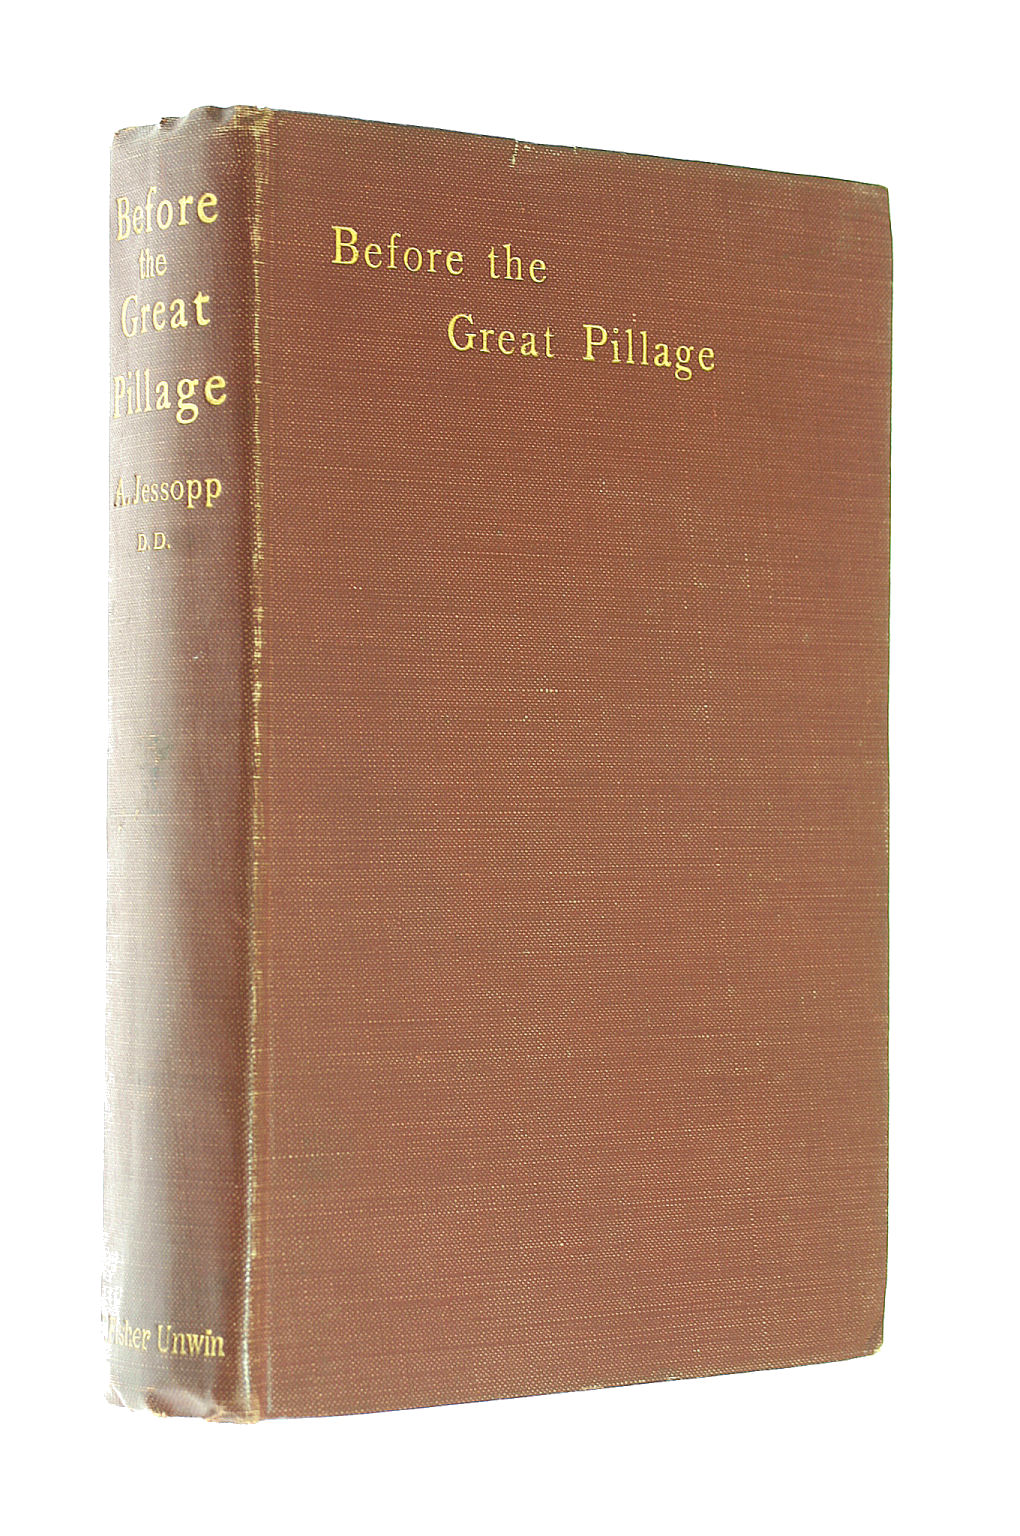 Image for BEFORE THE GREAT PILLAGE: WITH OTHER MISCELLANIES.